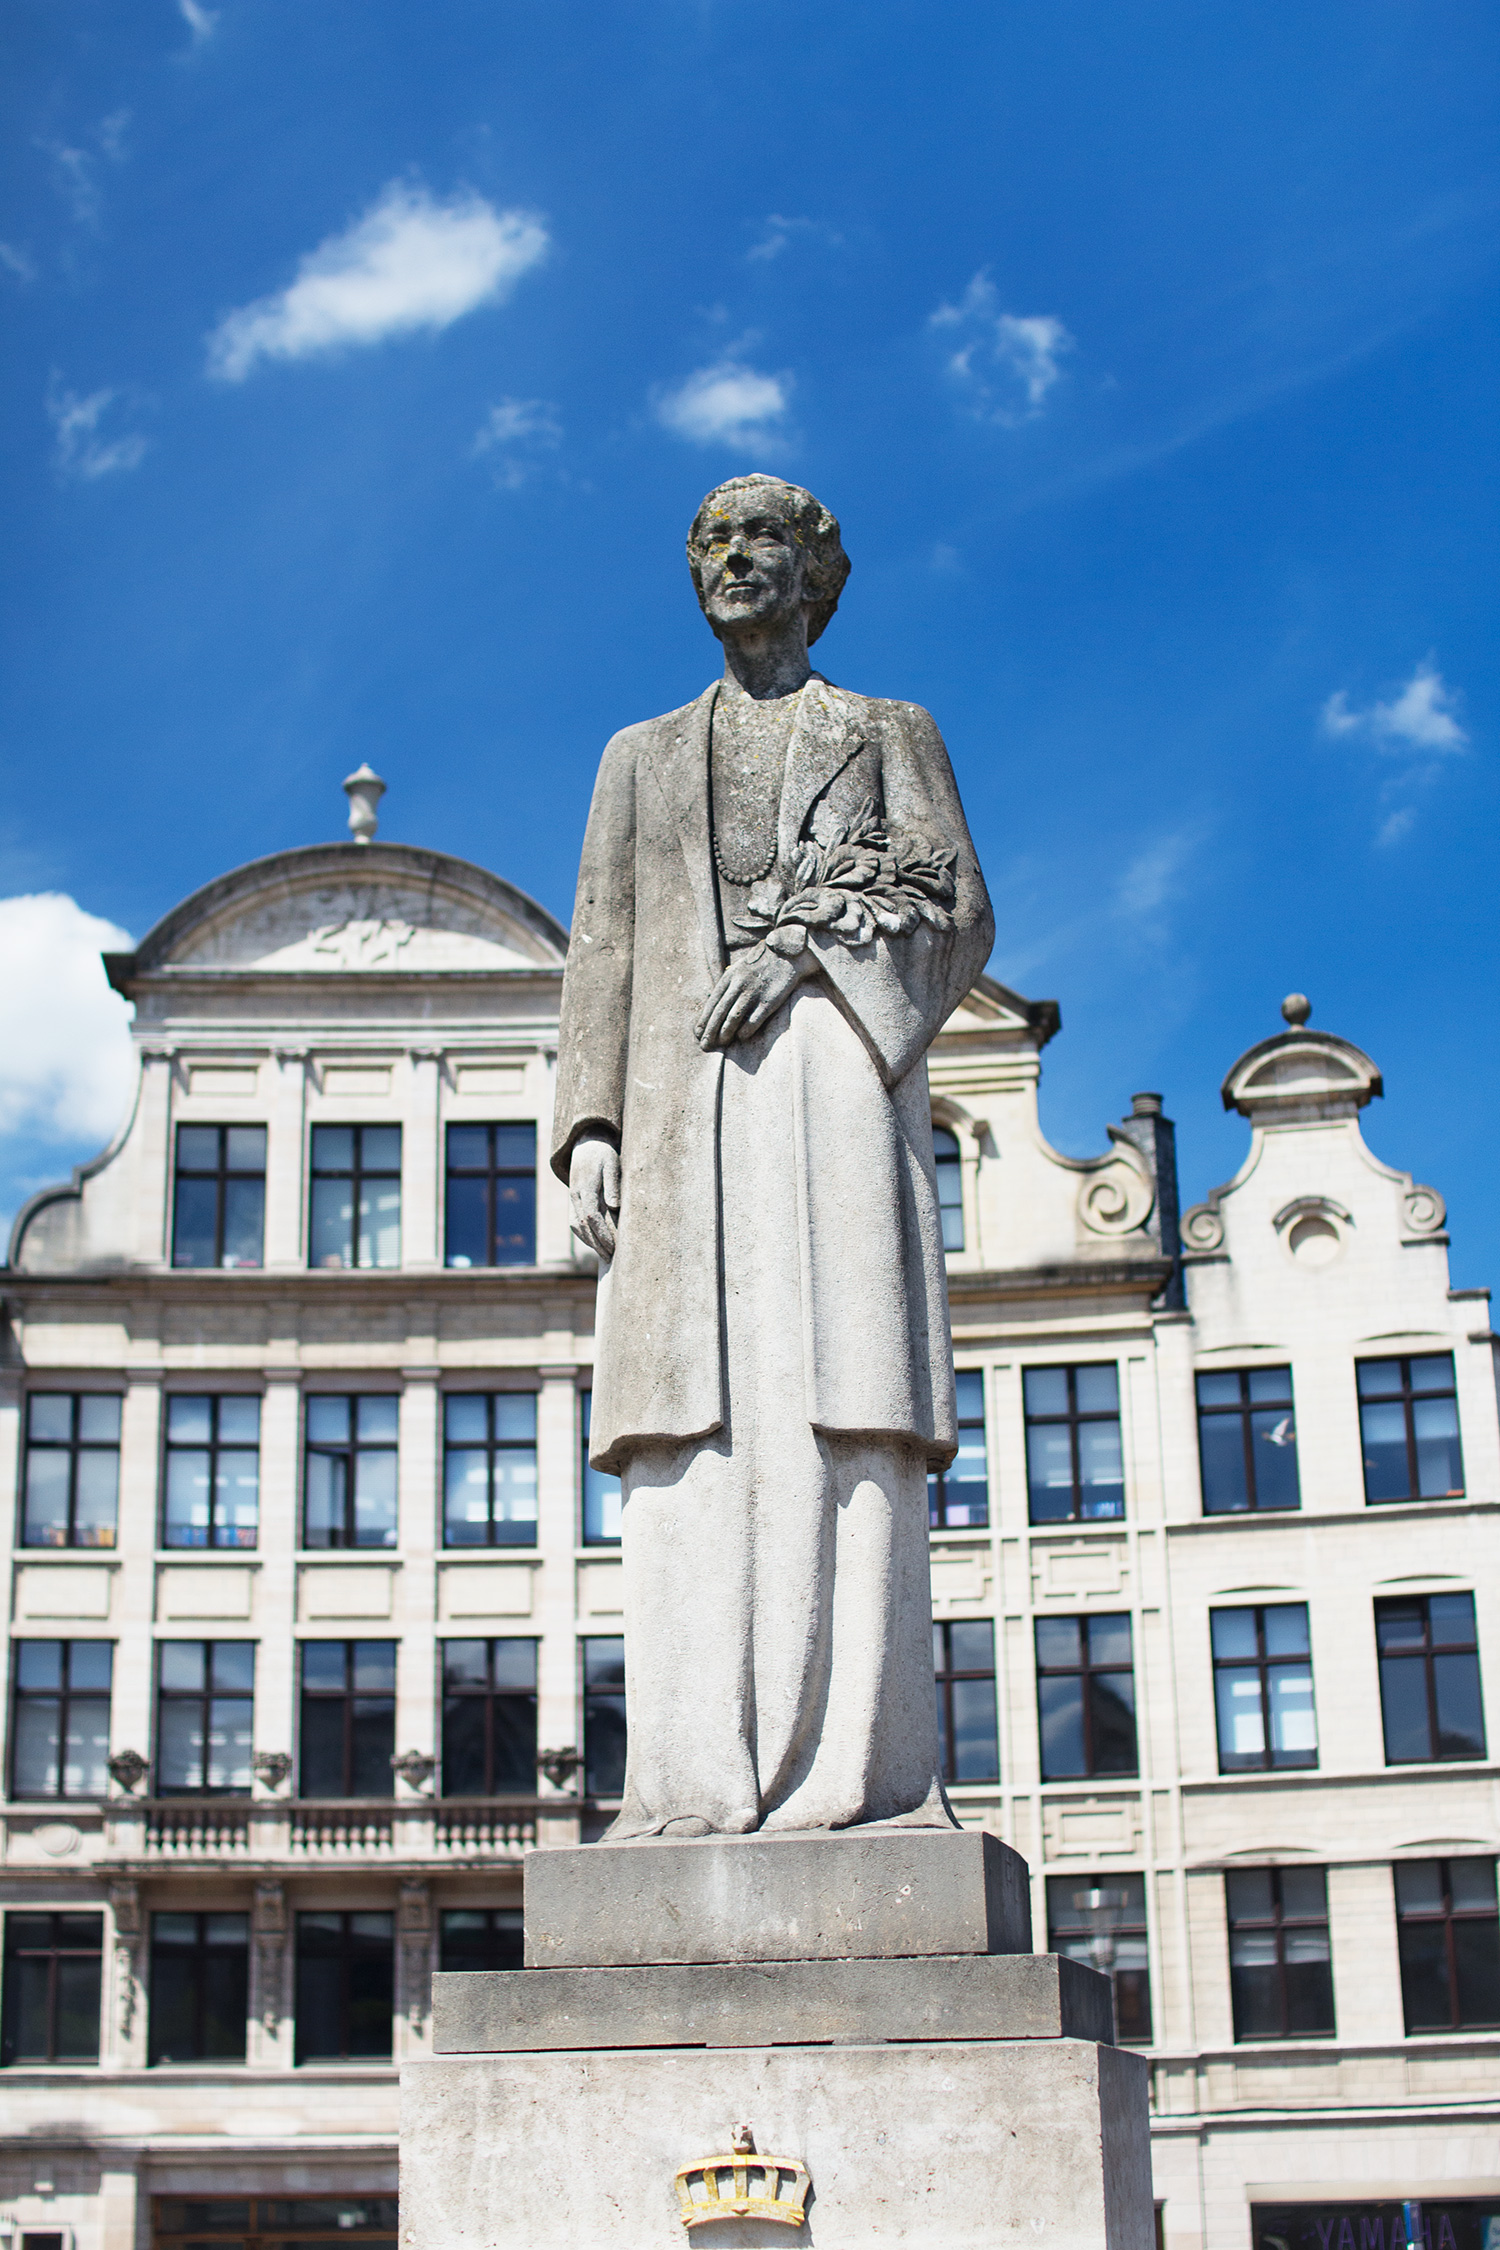 Queen Elisabeth Statue in Brussels, Belgium